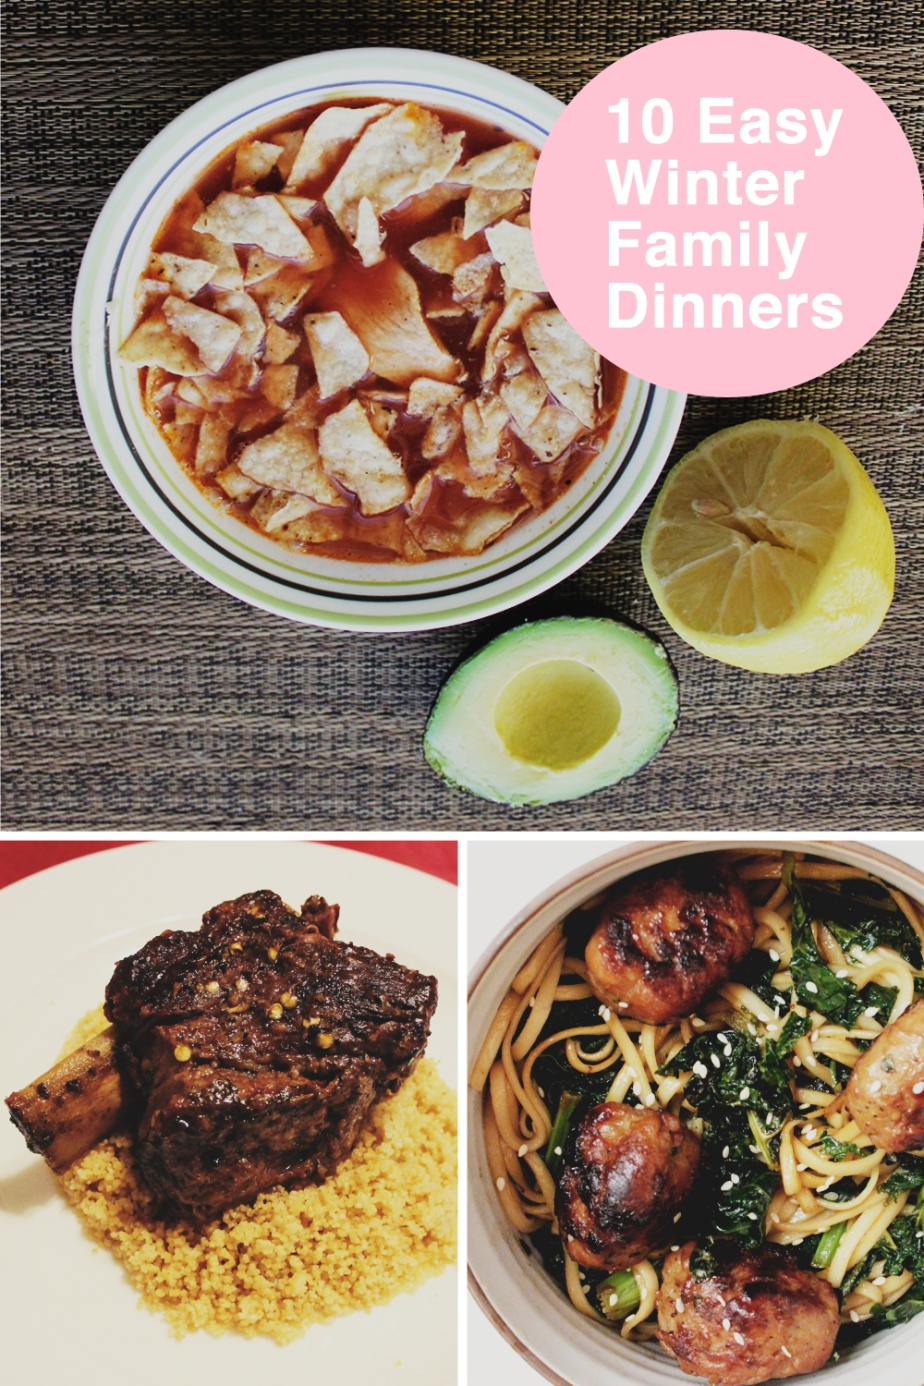 10 favorite winter dinners